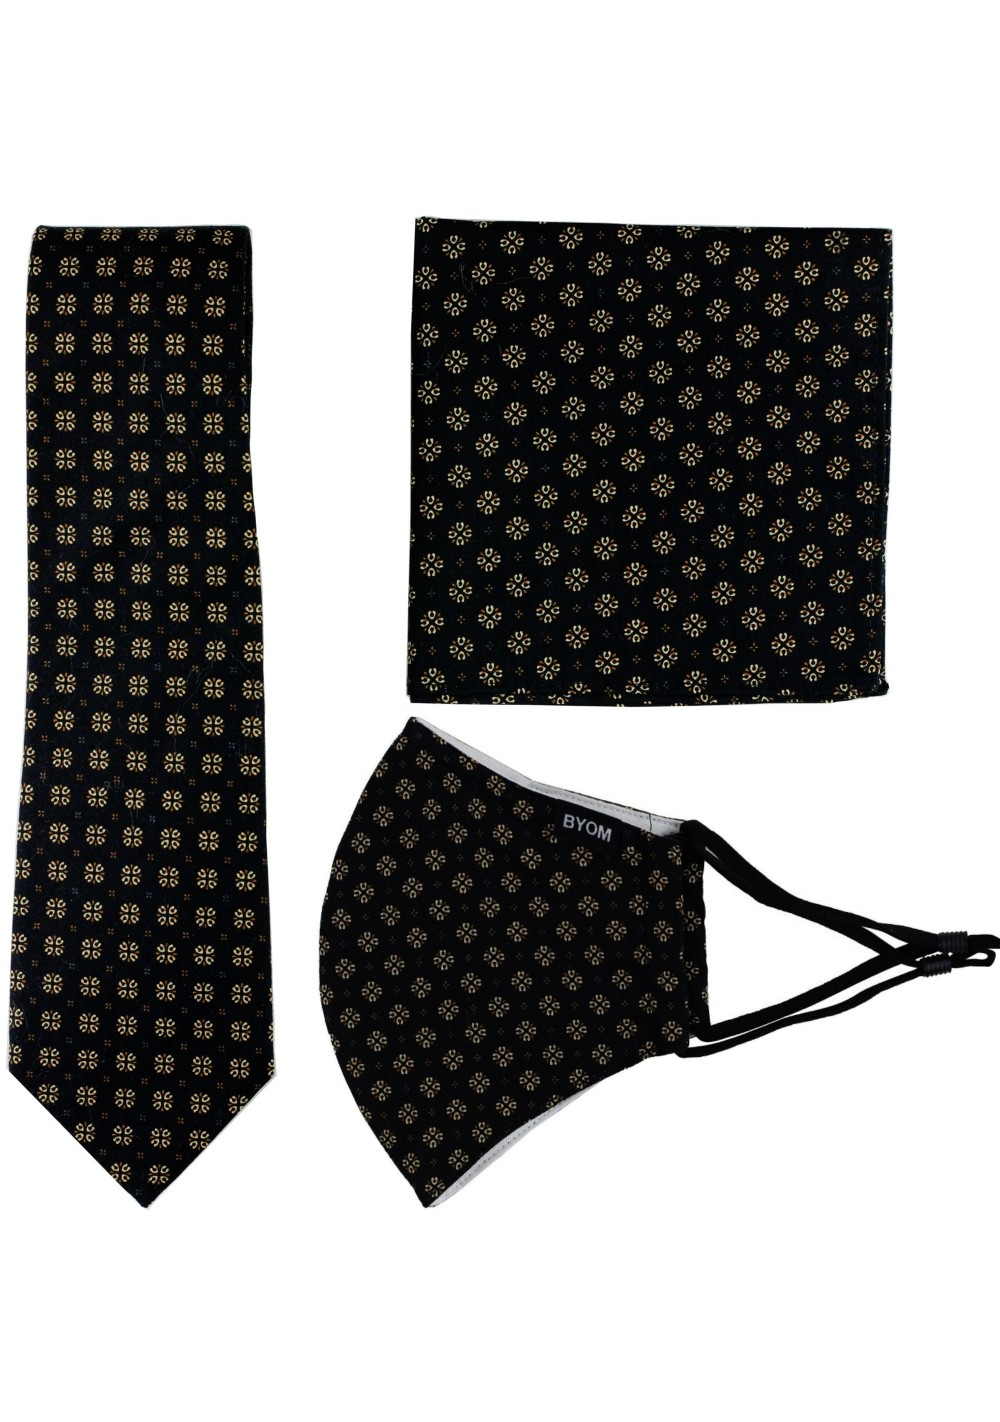 face mask necktie set in black and gold